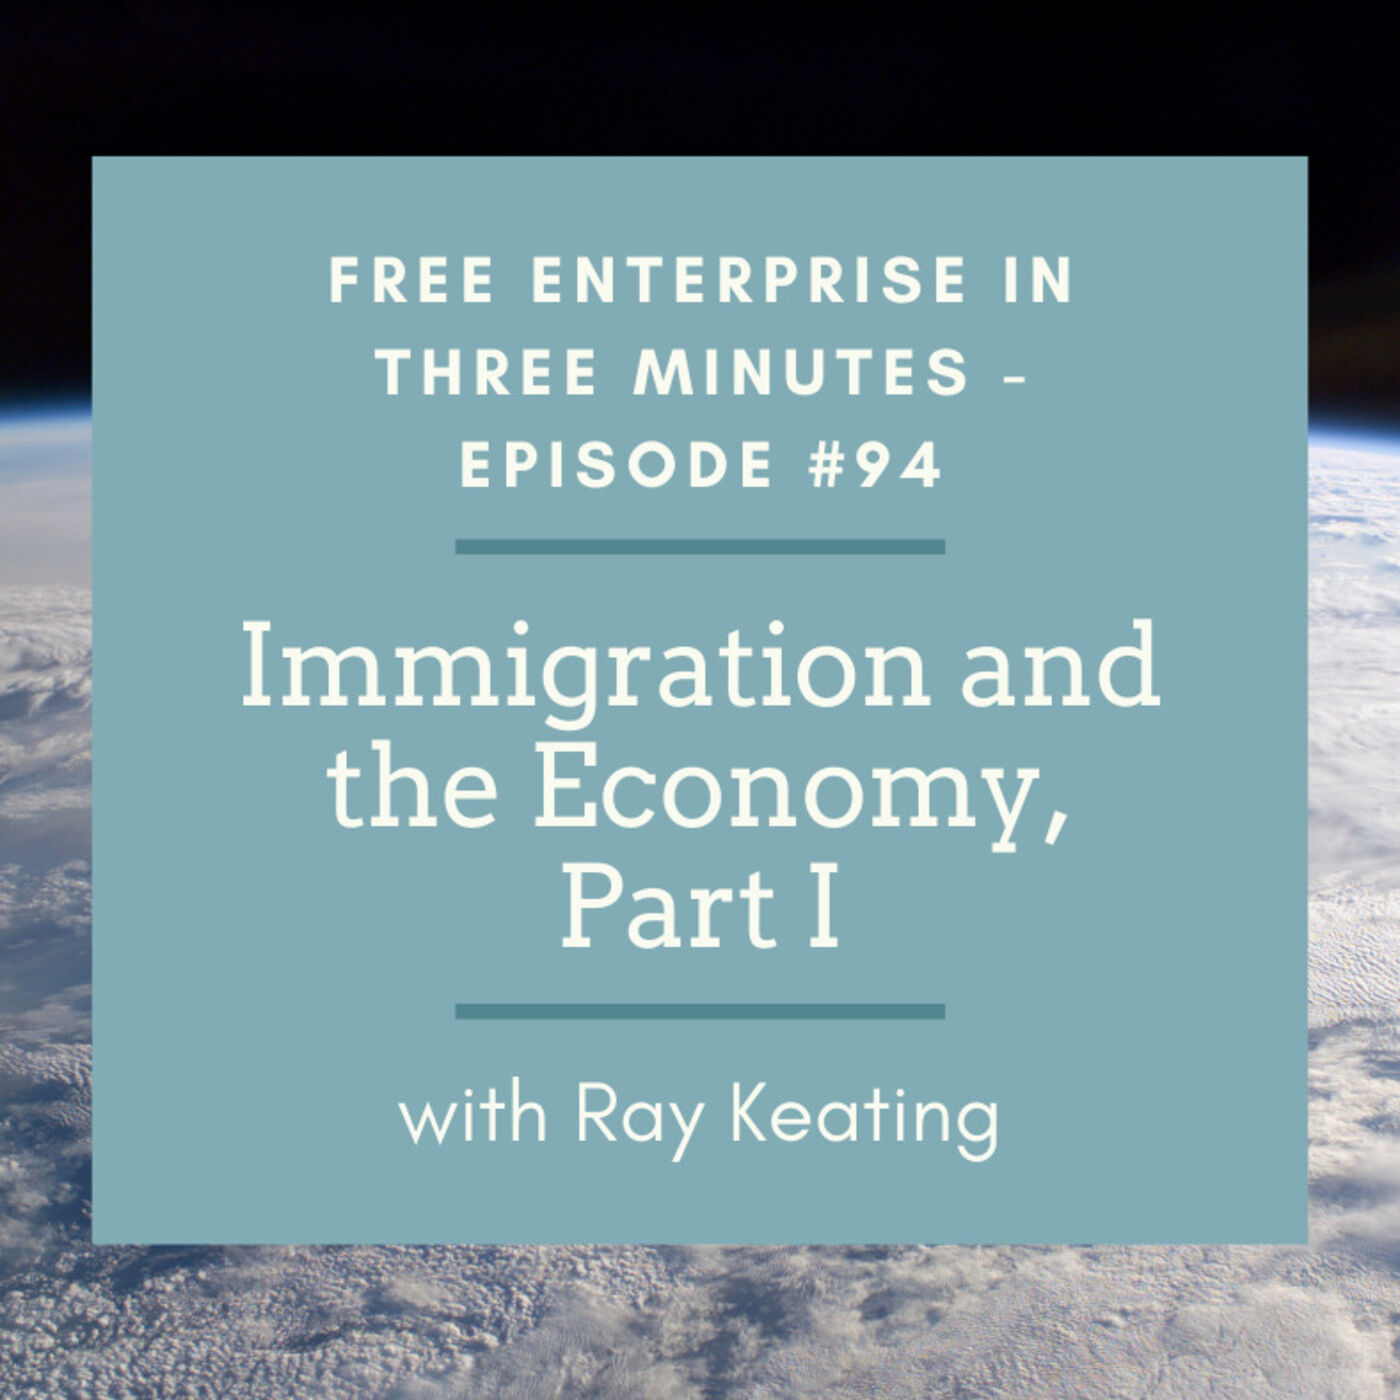 Episode #94: Immigration and the Economy, Part I